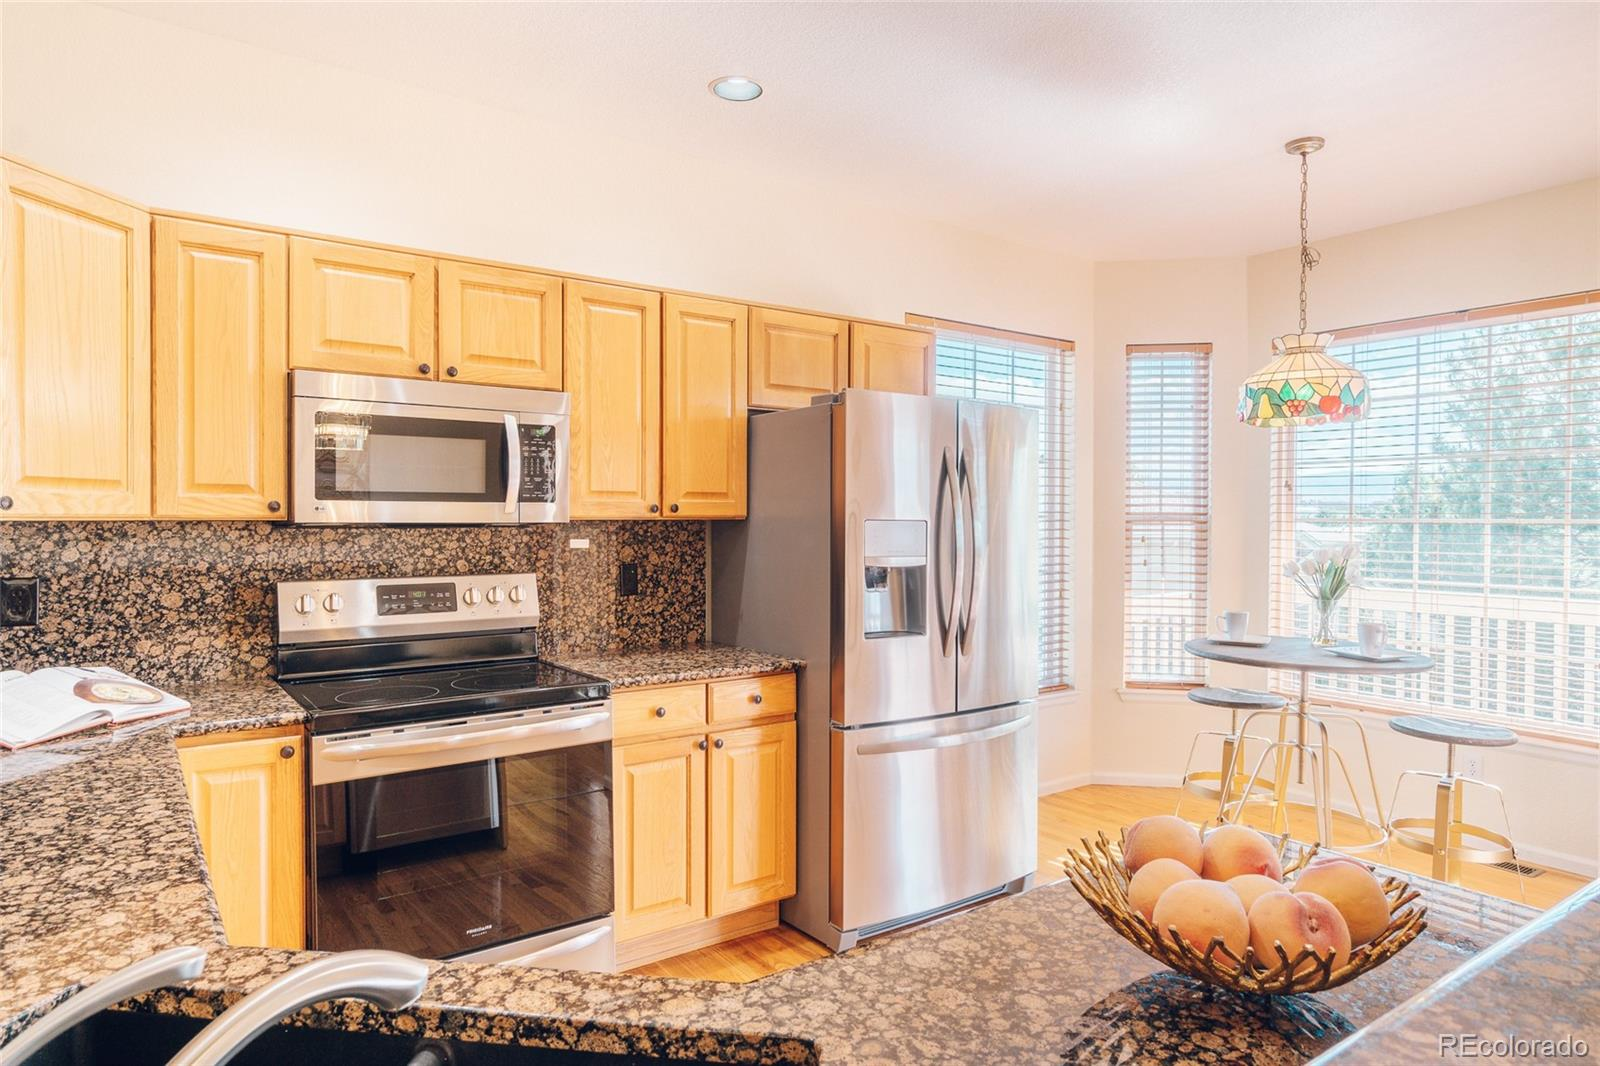 MLS# 4859119 - 2 - 9137 Woodland Drive, Highlands Ranch, CO 80126